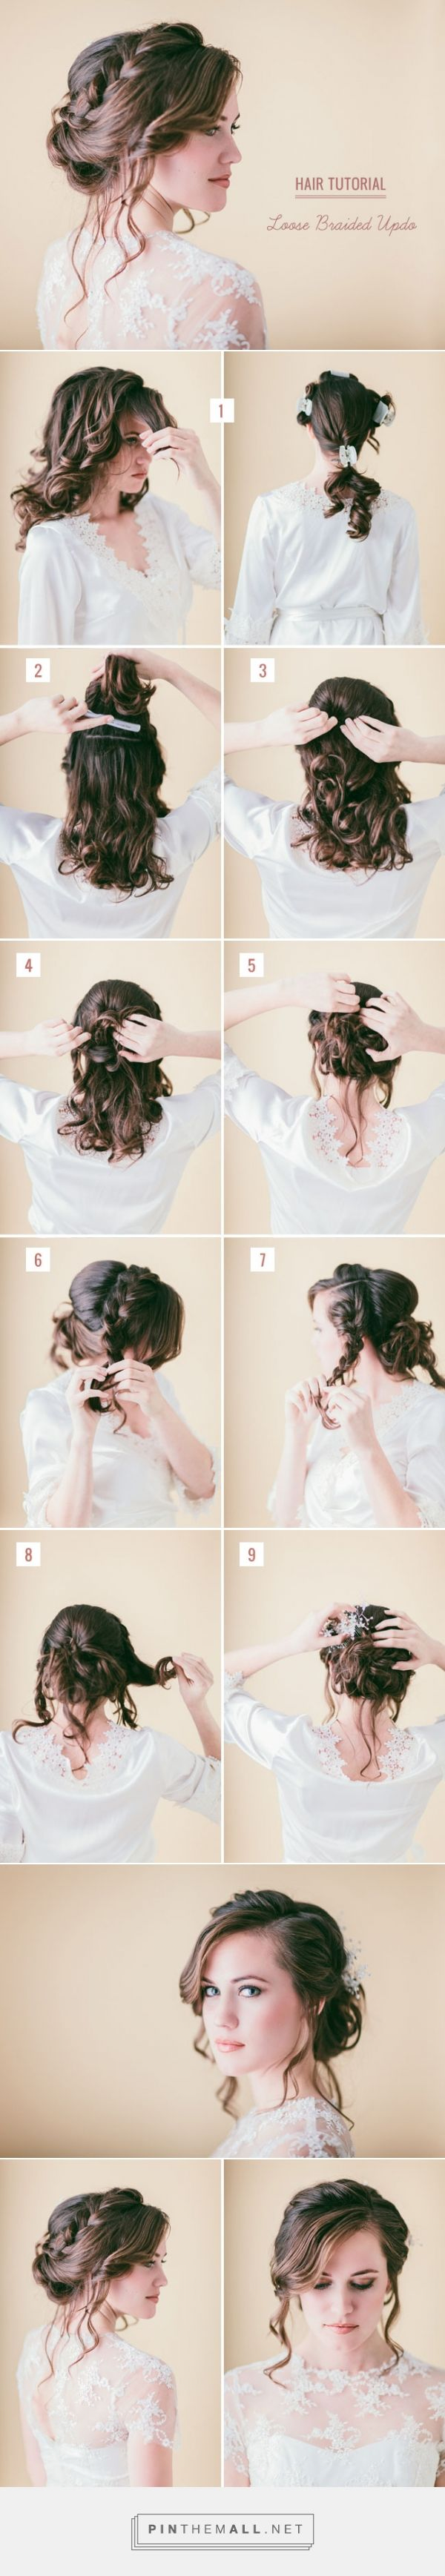 Hair Tutorial: Loose Braided Updo | Green Wedding Shoes Wedding Blog | Wedding Trends for Stylish + Creative Brides... - a grouped images picture - Pin Them All